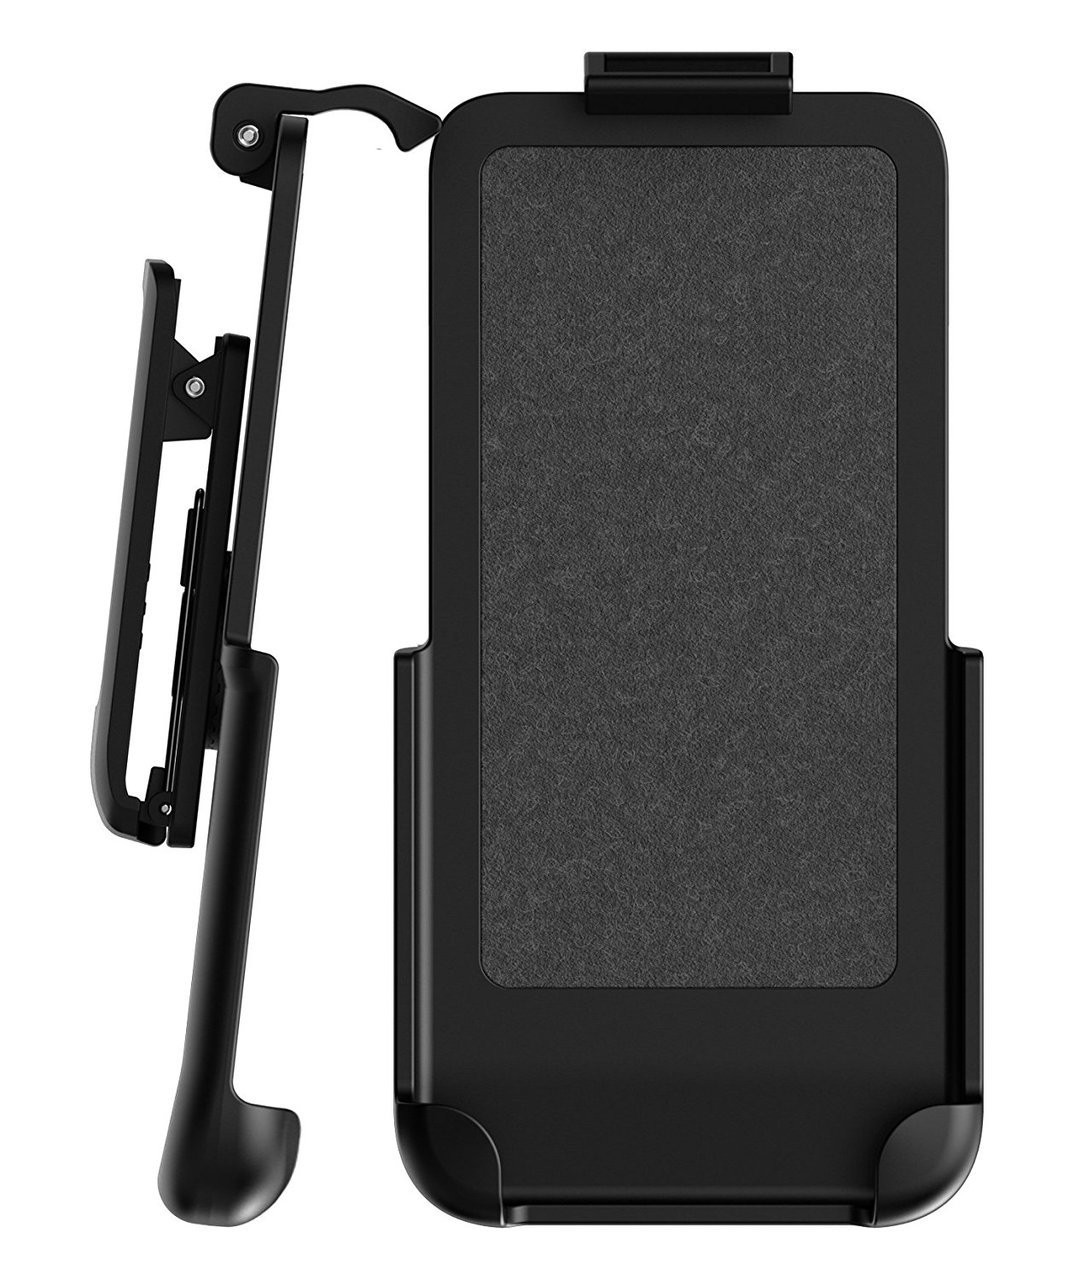 Encased Belt Clip Holster For Lifeproof Fre Iphone 5 5s Se Case Not Included 5se Kickstand Series Blackblack